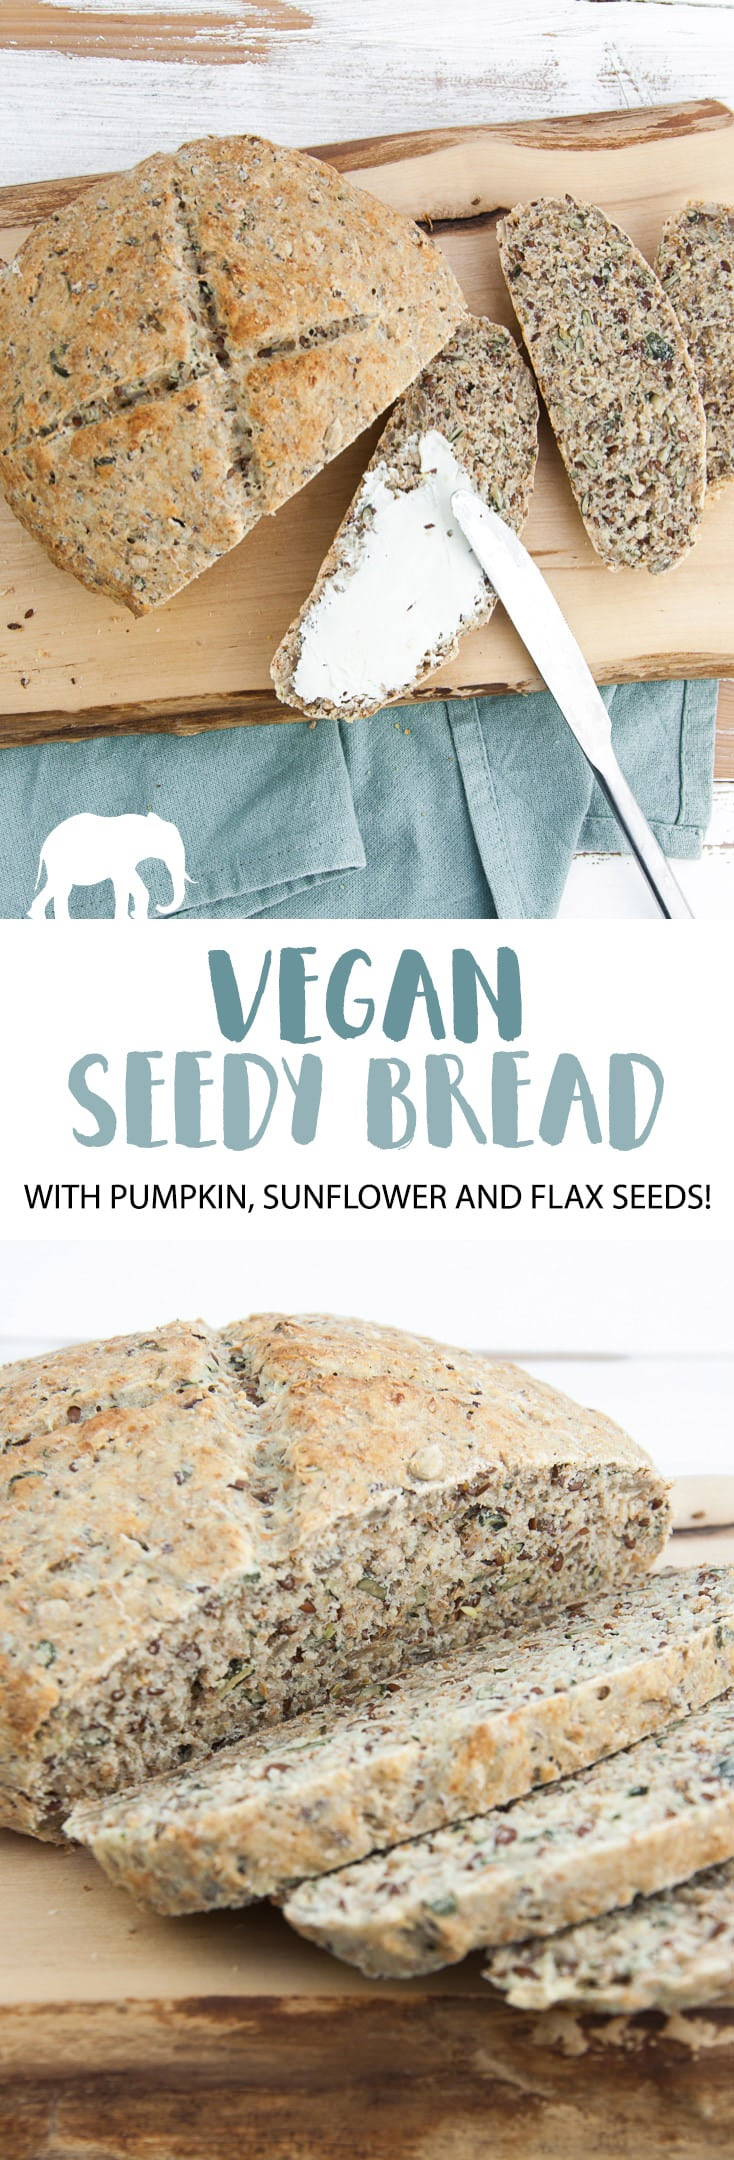 Vegan Seedy Bread | ElephantasticVegan.com #vegan #bread #seed #pumpkin #sunflower #flax